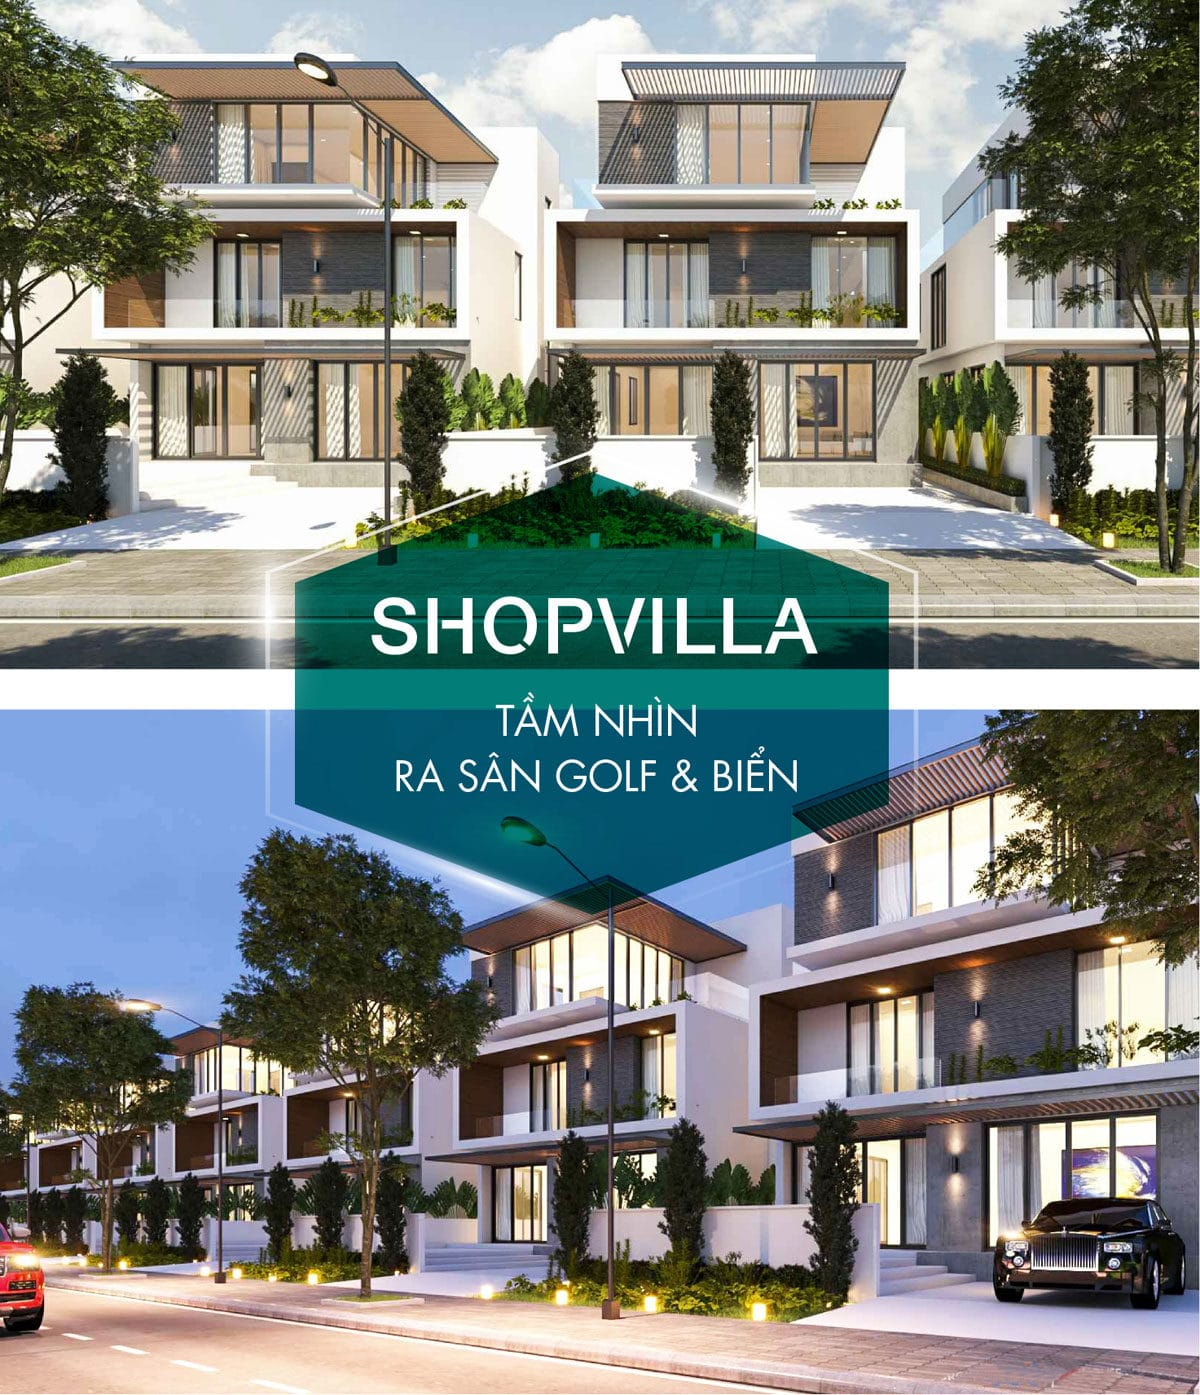 shopvilla FLC Miami District - DỰ ÁN FLC MIAMI DISTRICT QUY NHƠN